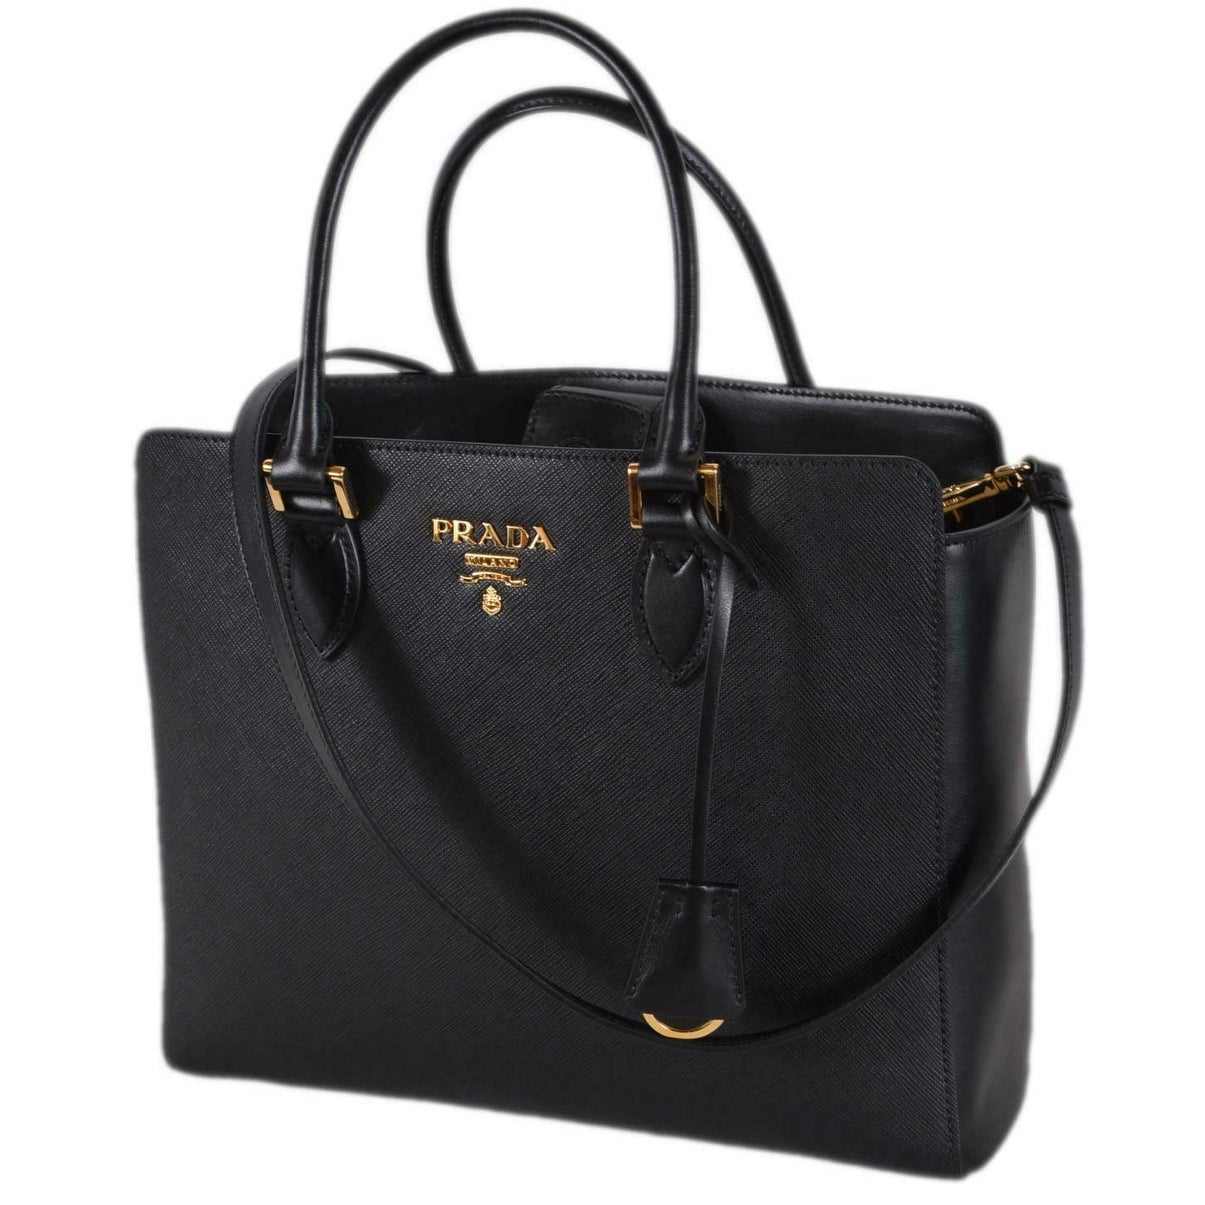 54a9ac472b Shop Prada 1BA189 Black Saffiano Leather Plaque Logo 2-Way Purse Handbag  Tote - Free Shipping Today - Overstock - 27589119